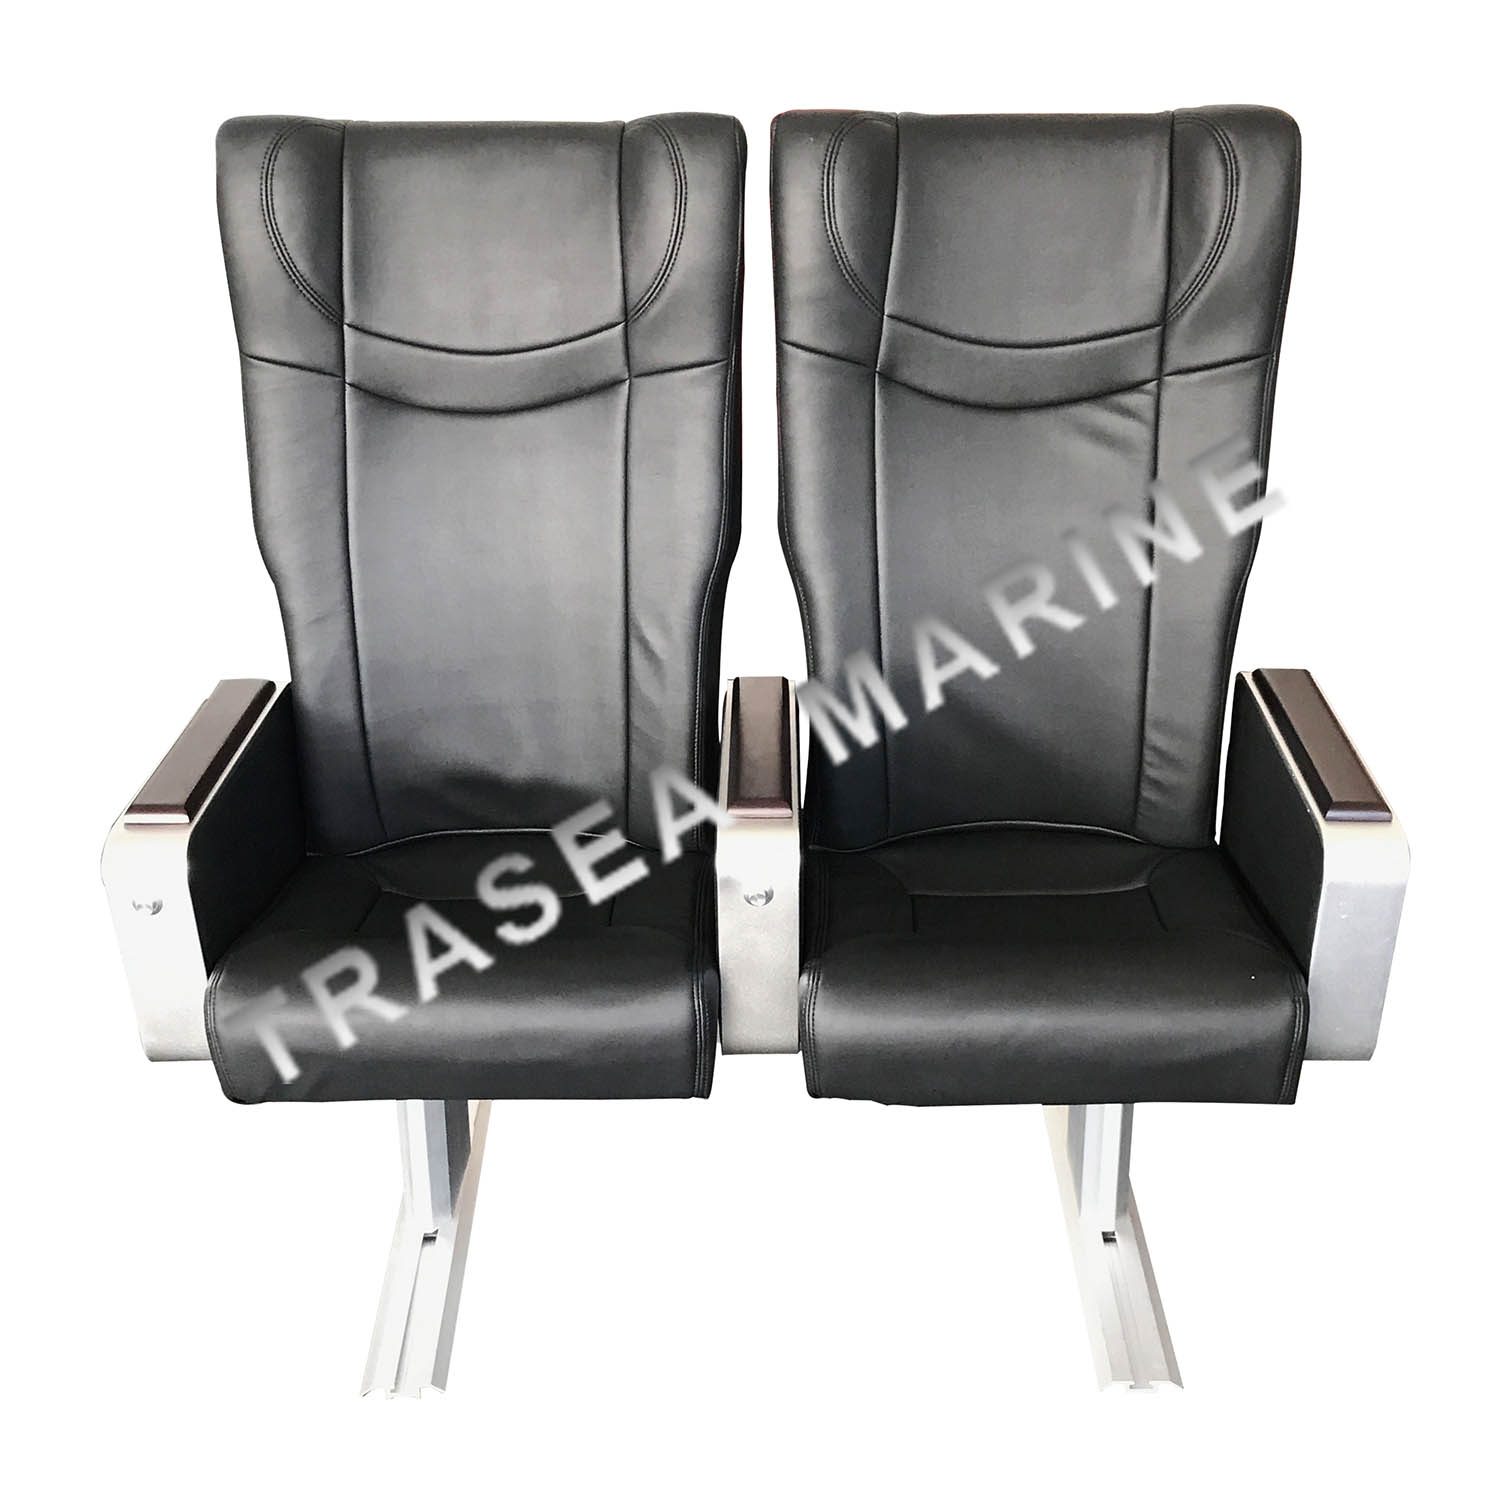 comfortable ferry seats